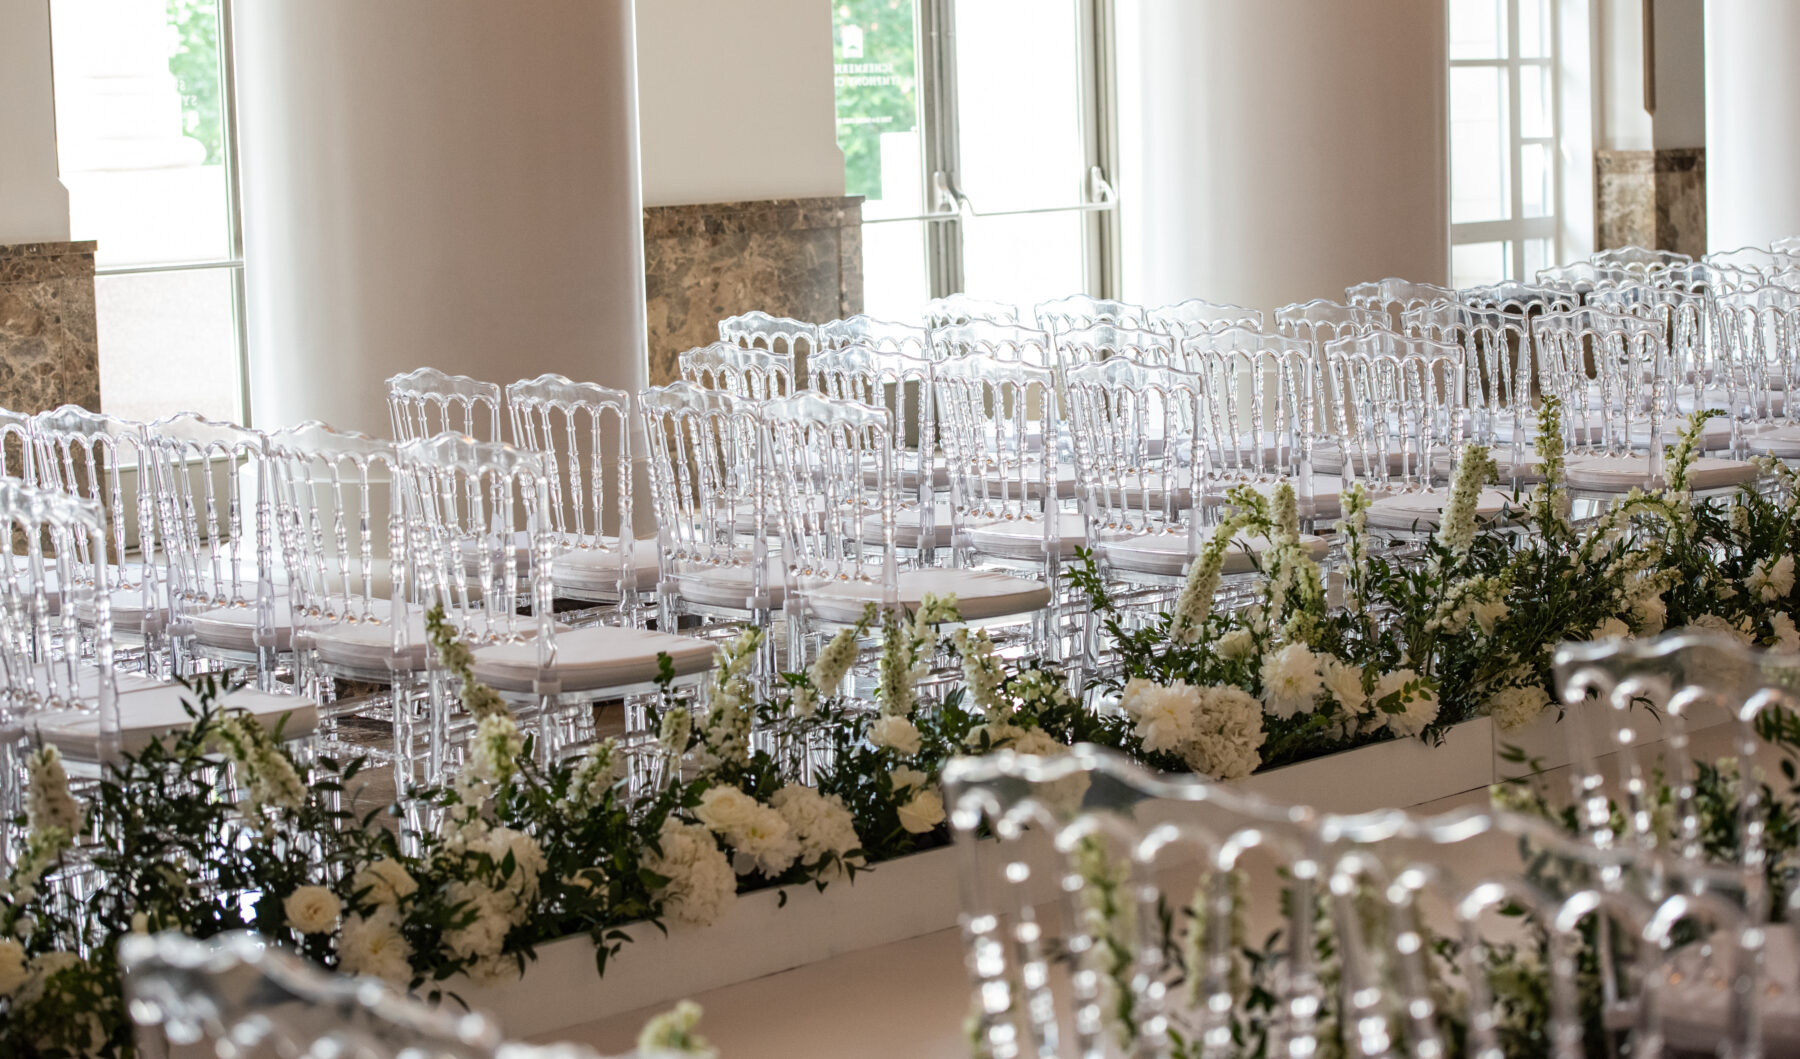 Clear chiavari wedding ceremony chairs: Floral Filled Luxurious Wedding by LMA Designs featured on Nashville Bride Guide